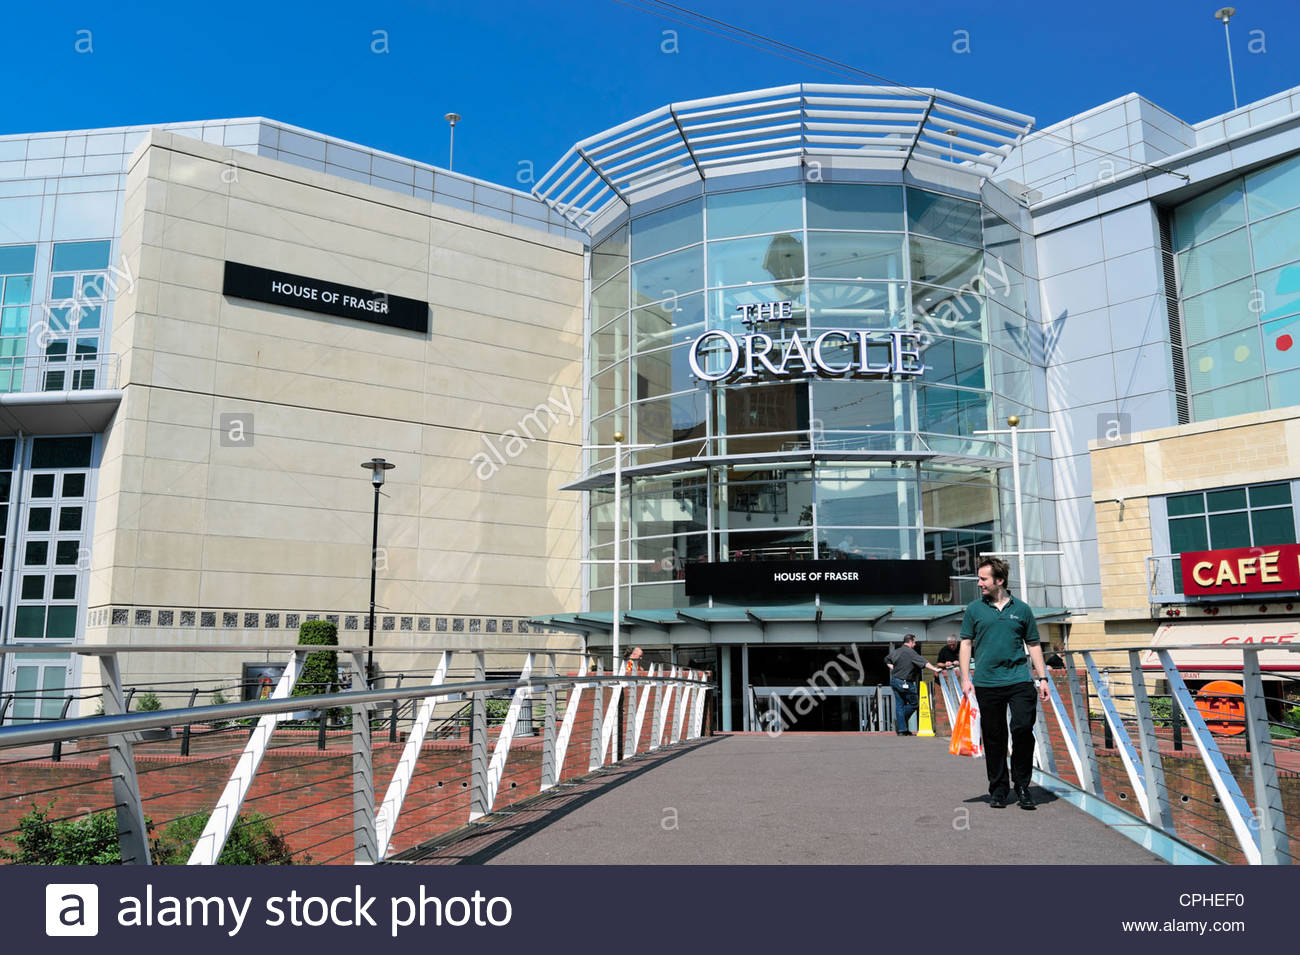 Entrance to the Oracle shopping centre in Reading, Berkshire, UK. - Stock Image